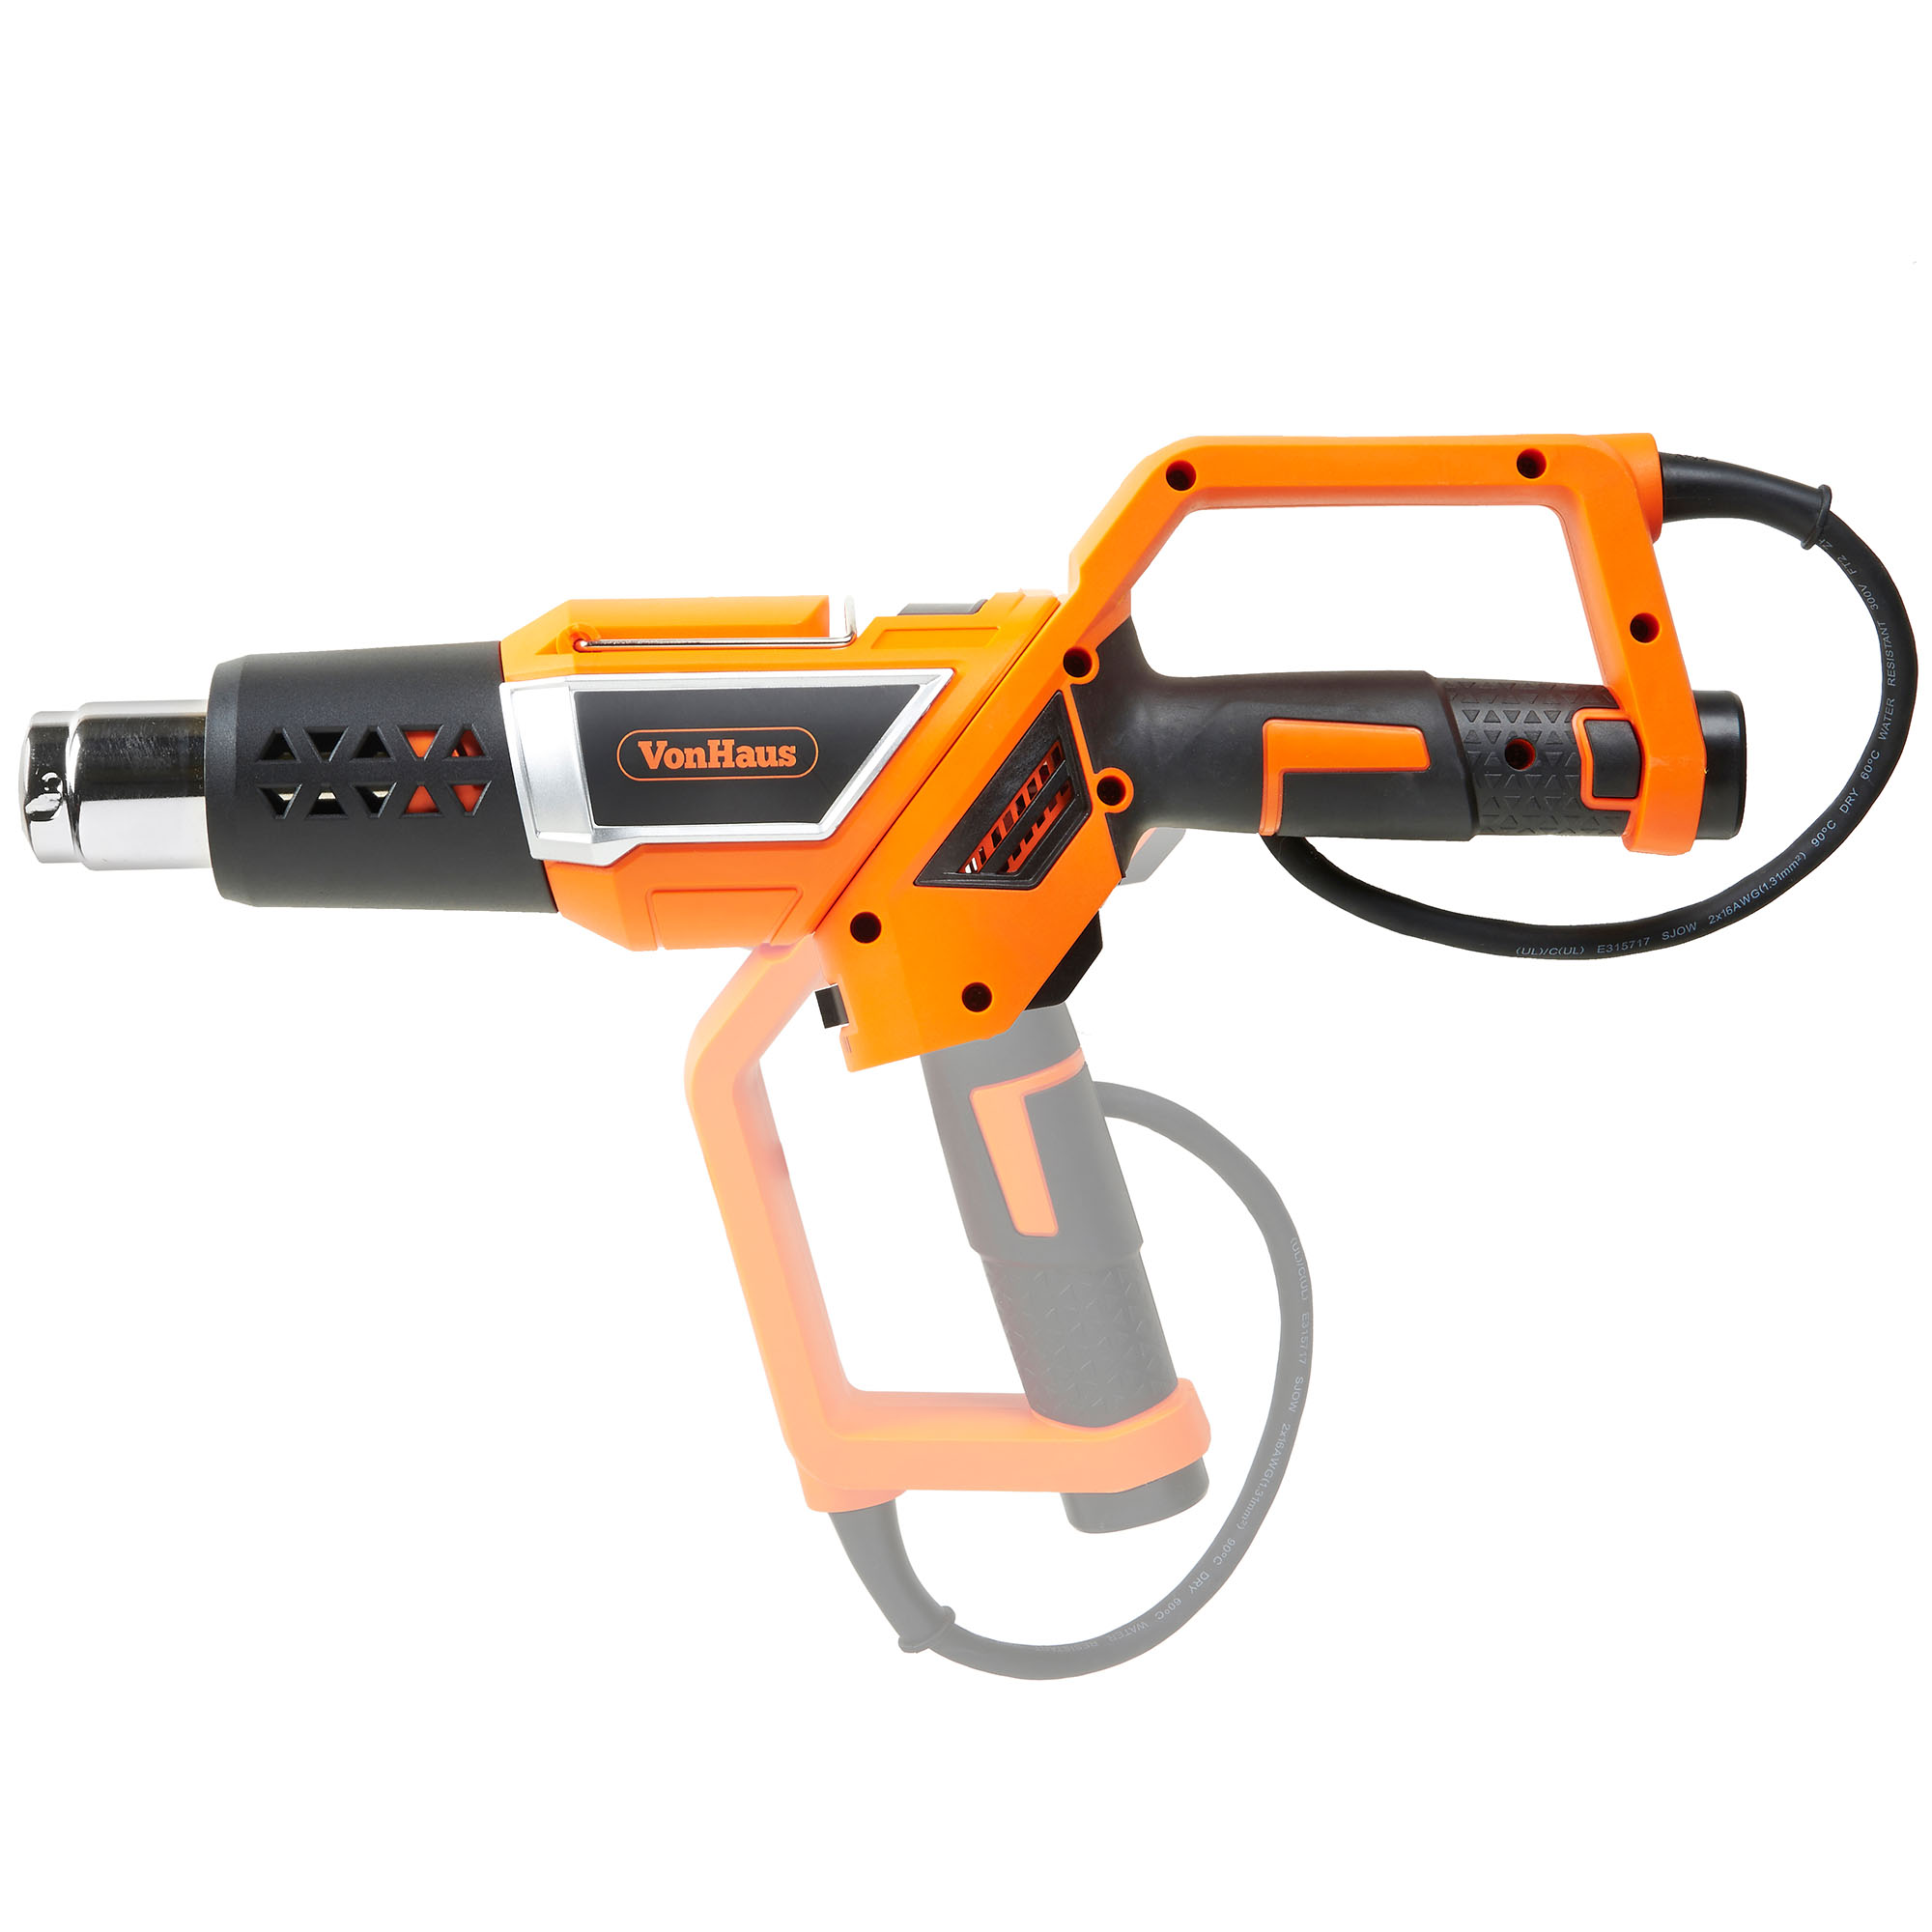 VonHaus Professional Electric Heat Gun Set with Twistable Nozzle, 3 Temperature Settings and 5 Accessories for Heating BBQ Grills, PVC Shrink, Stripping Paint, Soldering Pipes